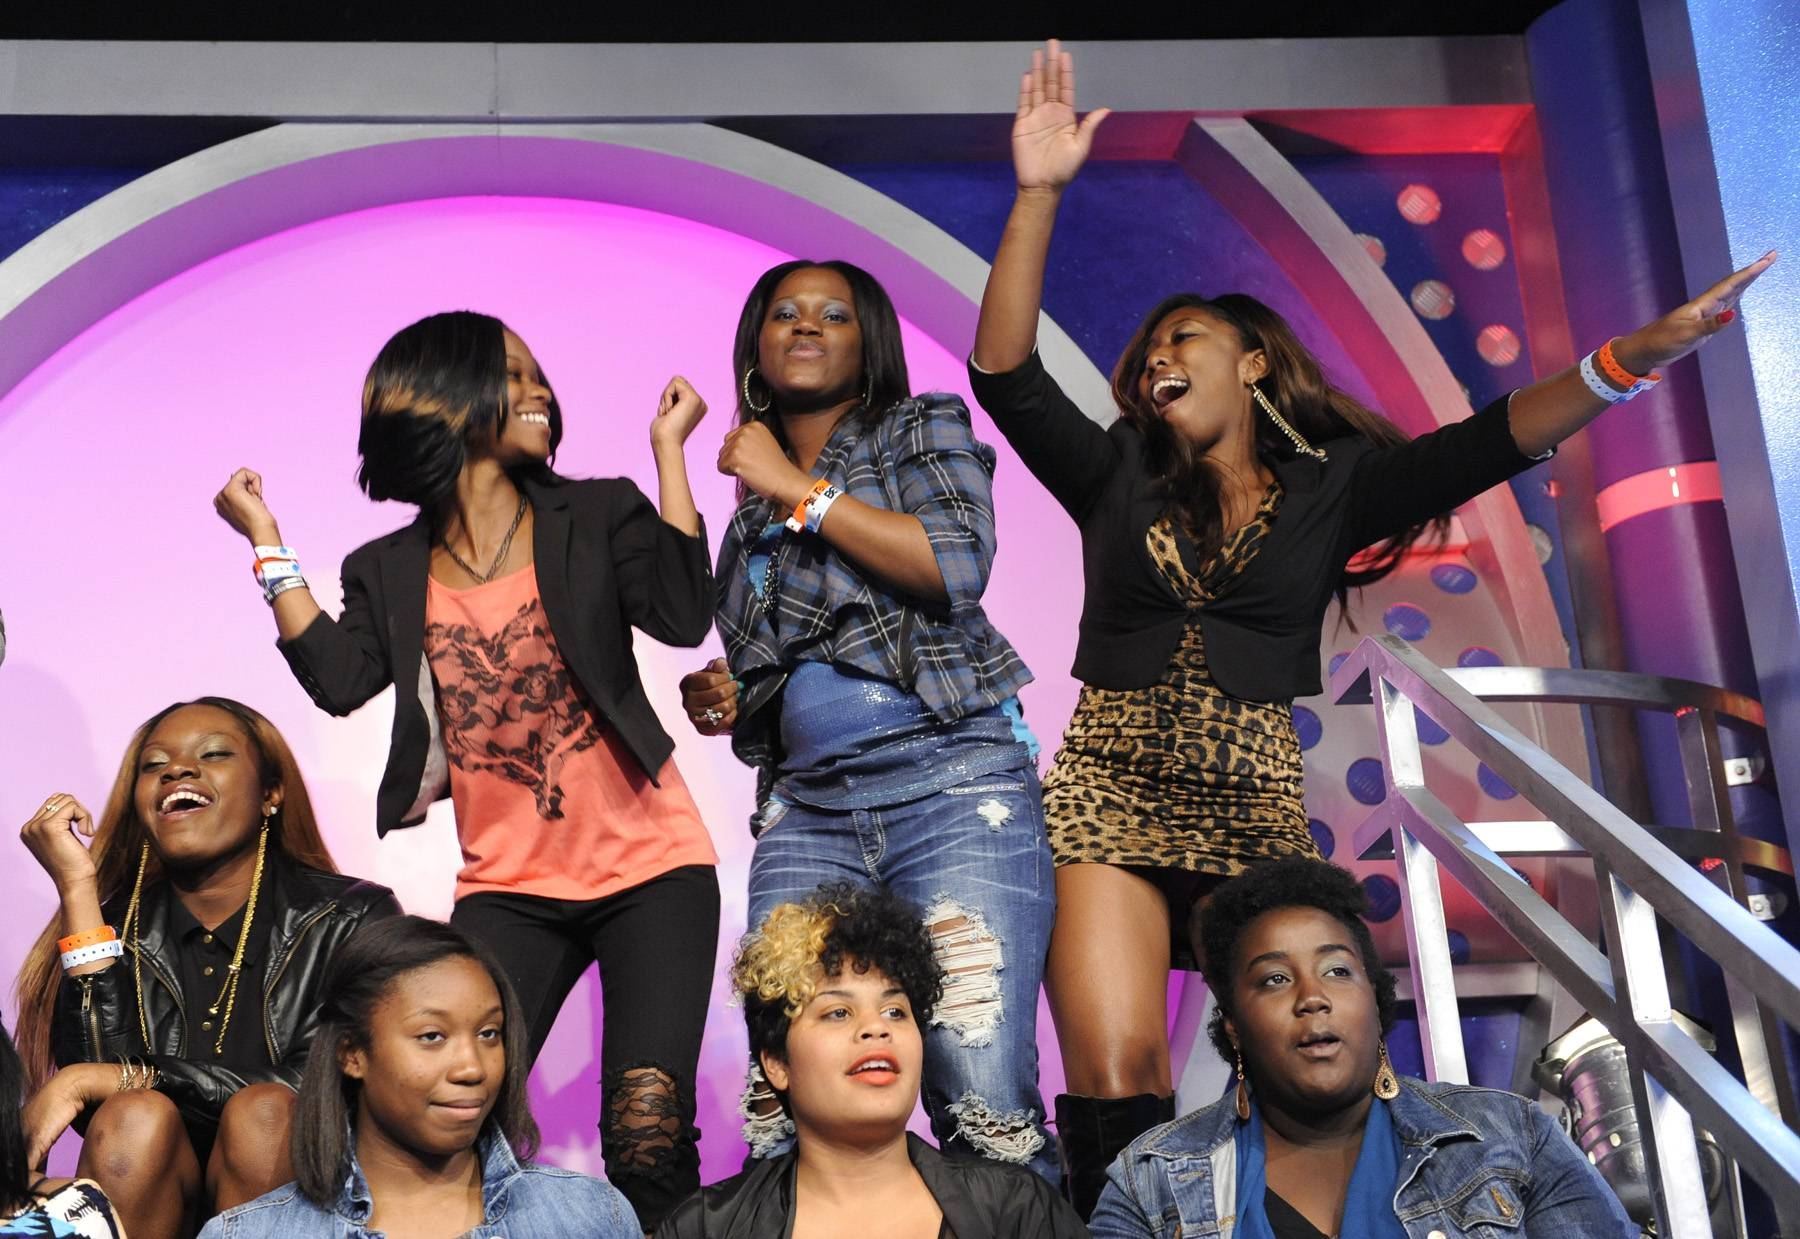 Get It Girl - The Livest Audience gets their dance on, May 3, 2012. (Photo: John Ricard / BET)